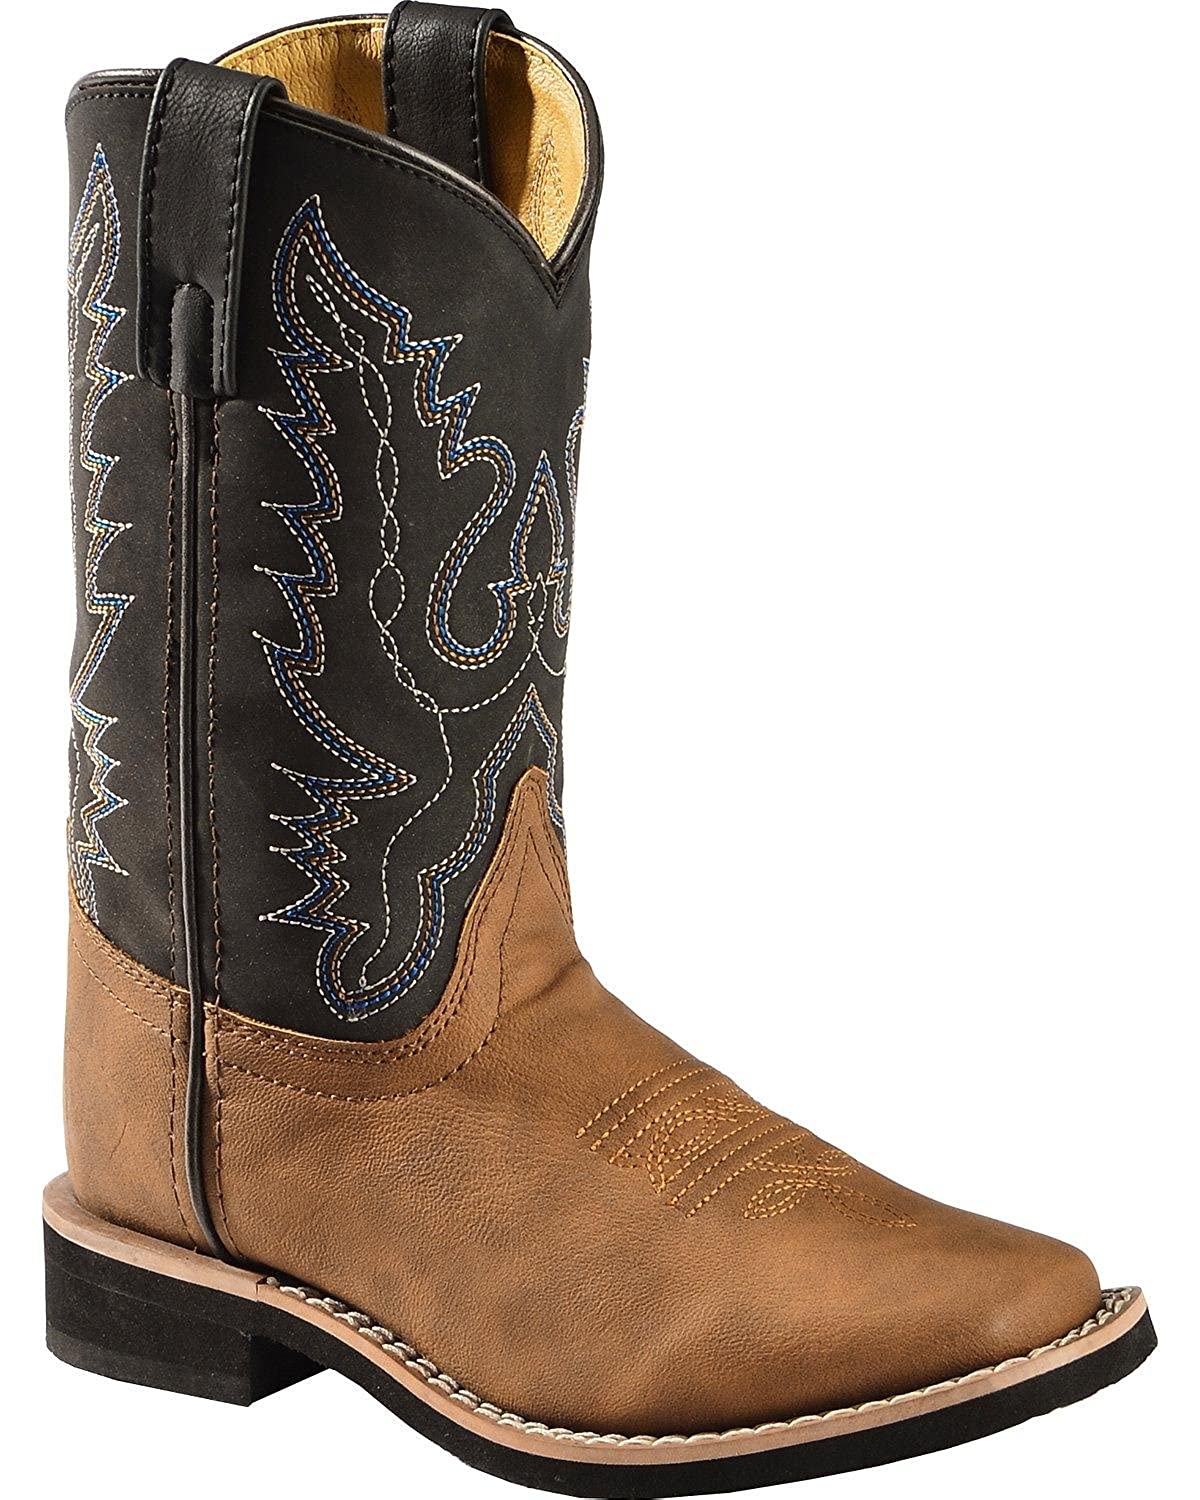 Smoky Mountain Boots Swift Creek Boys Cowboy Boot Square Toe 1725-C